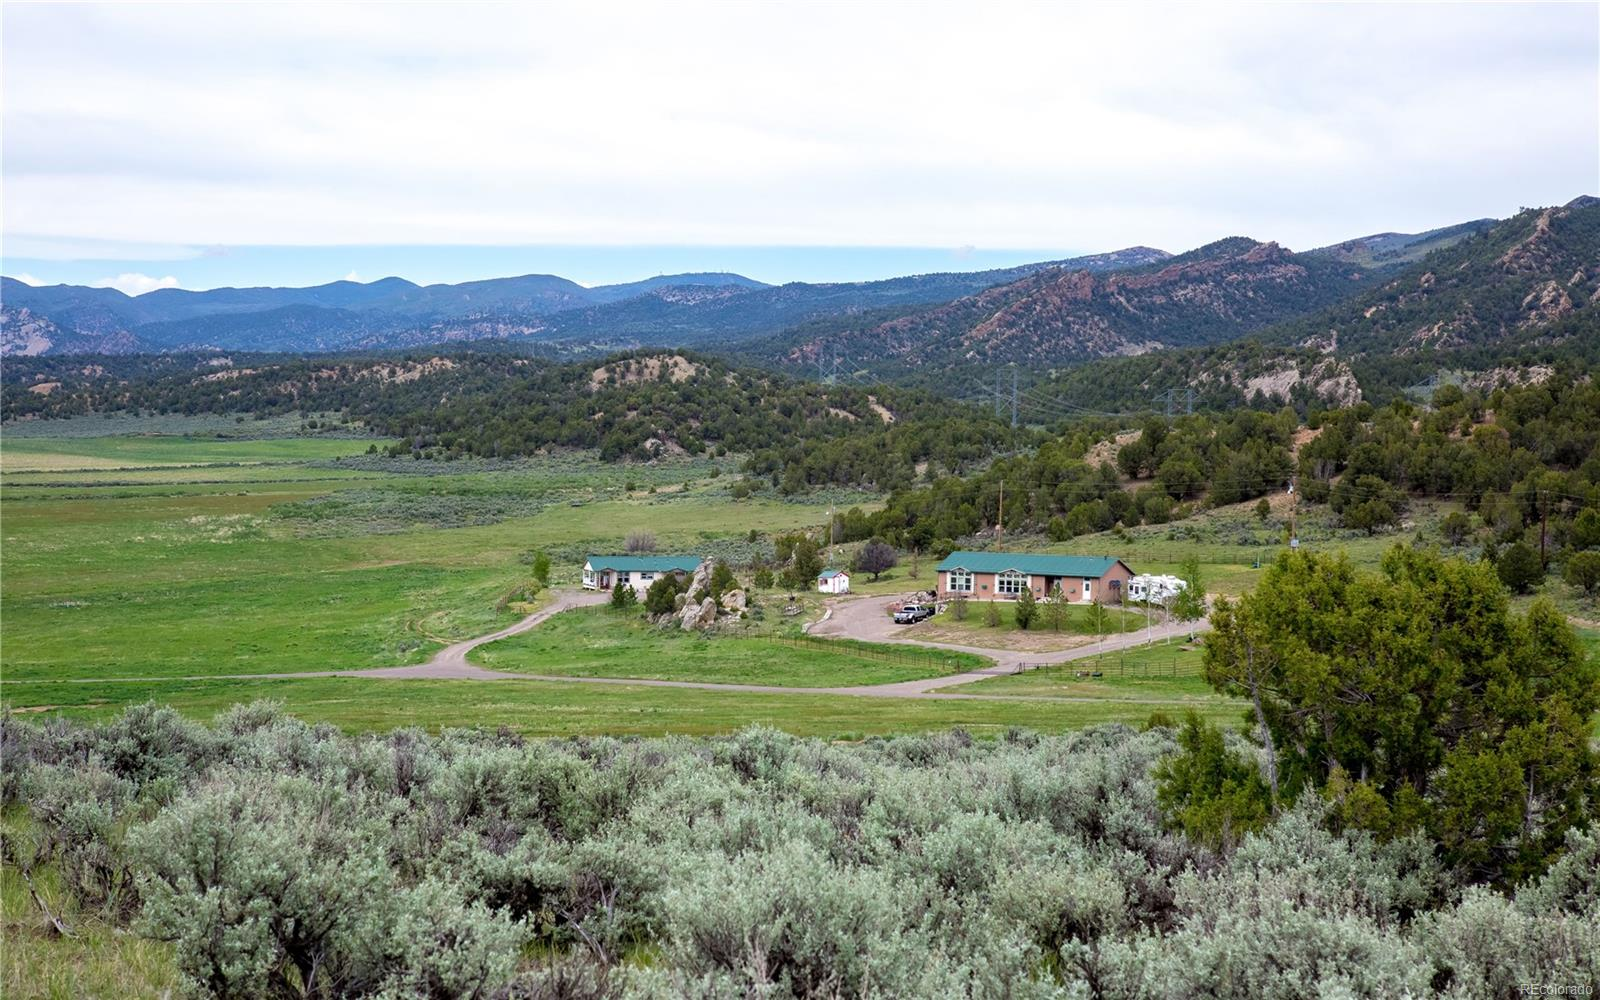 2204 County Road 7, Meeker, CO 81641 - Meeker, CO real estate listing